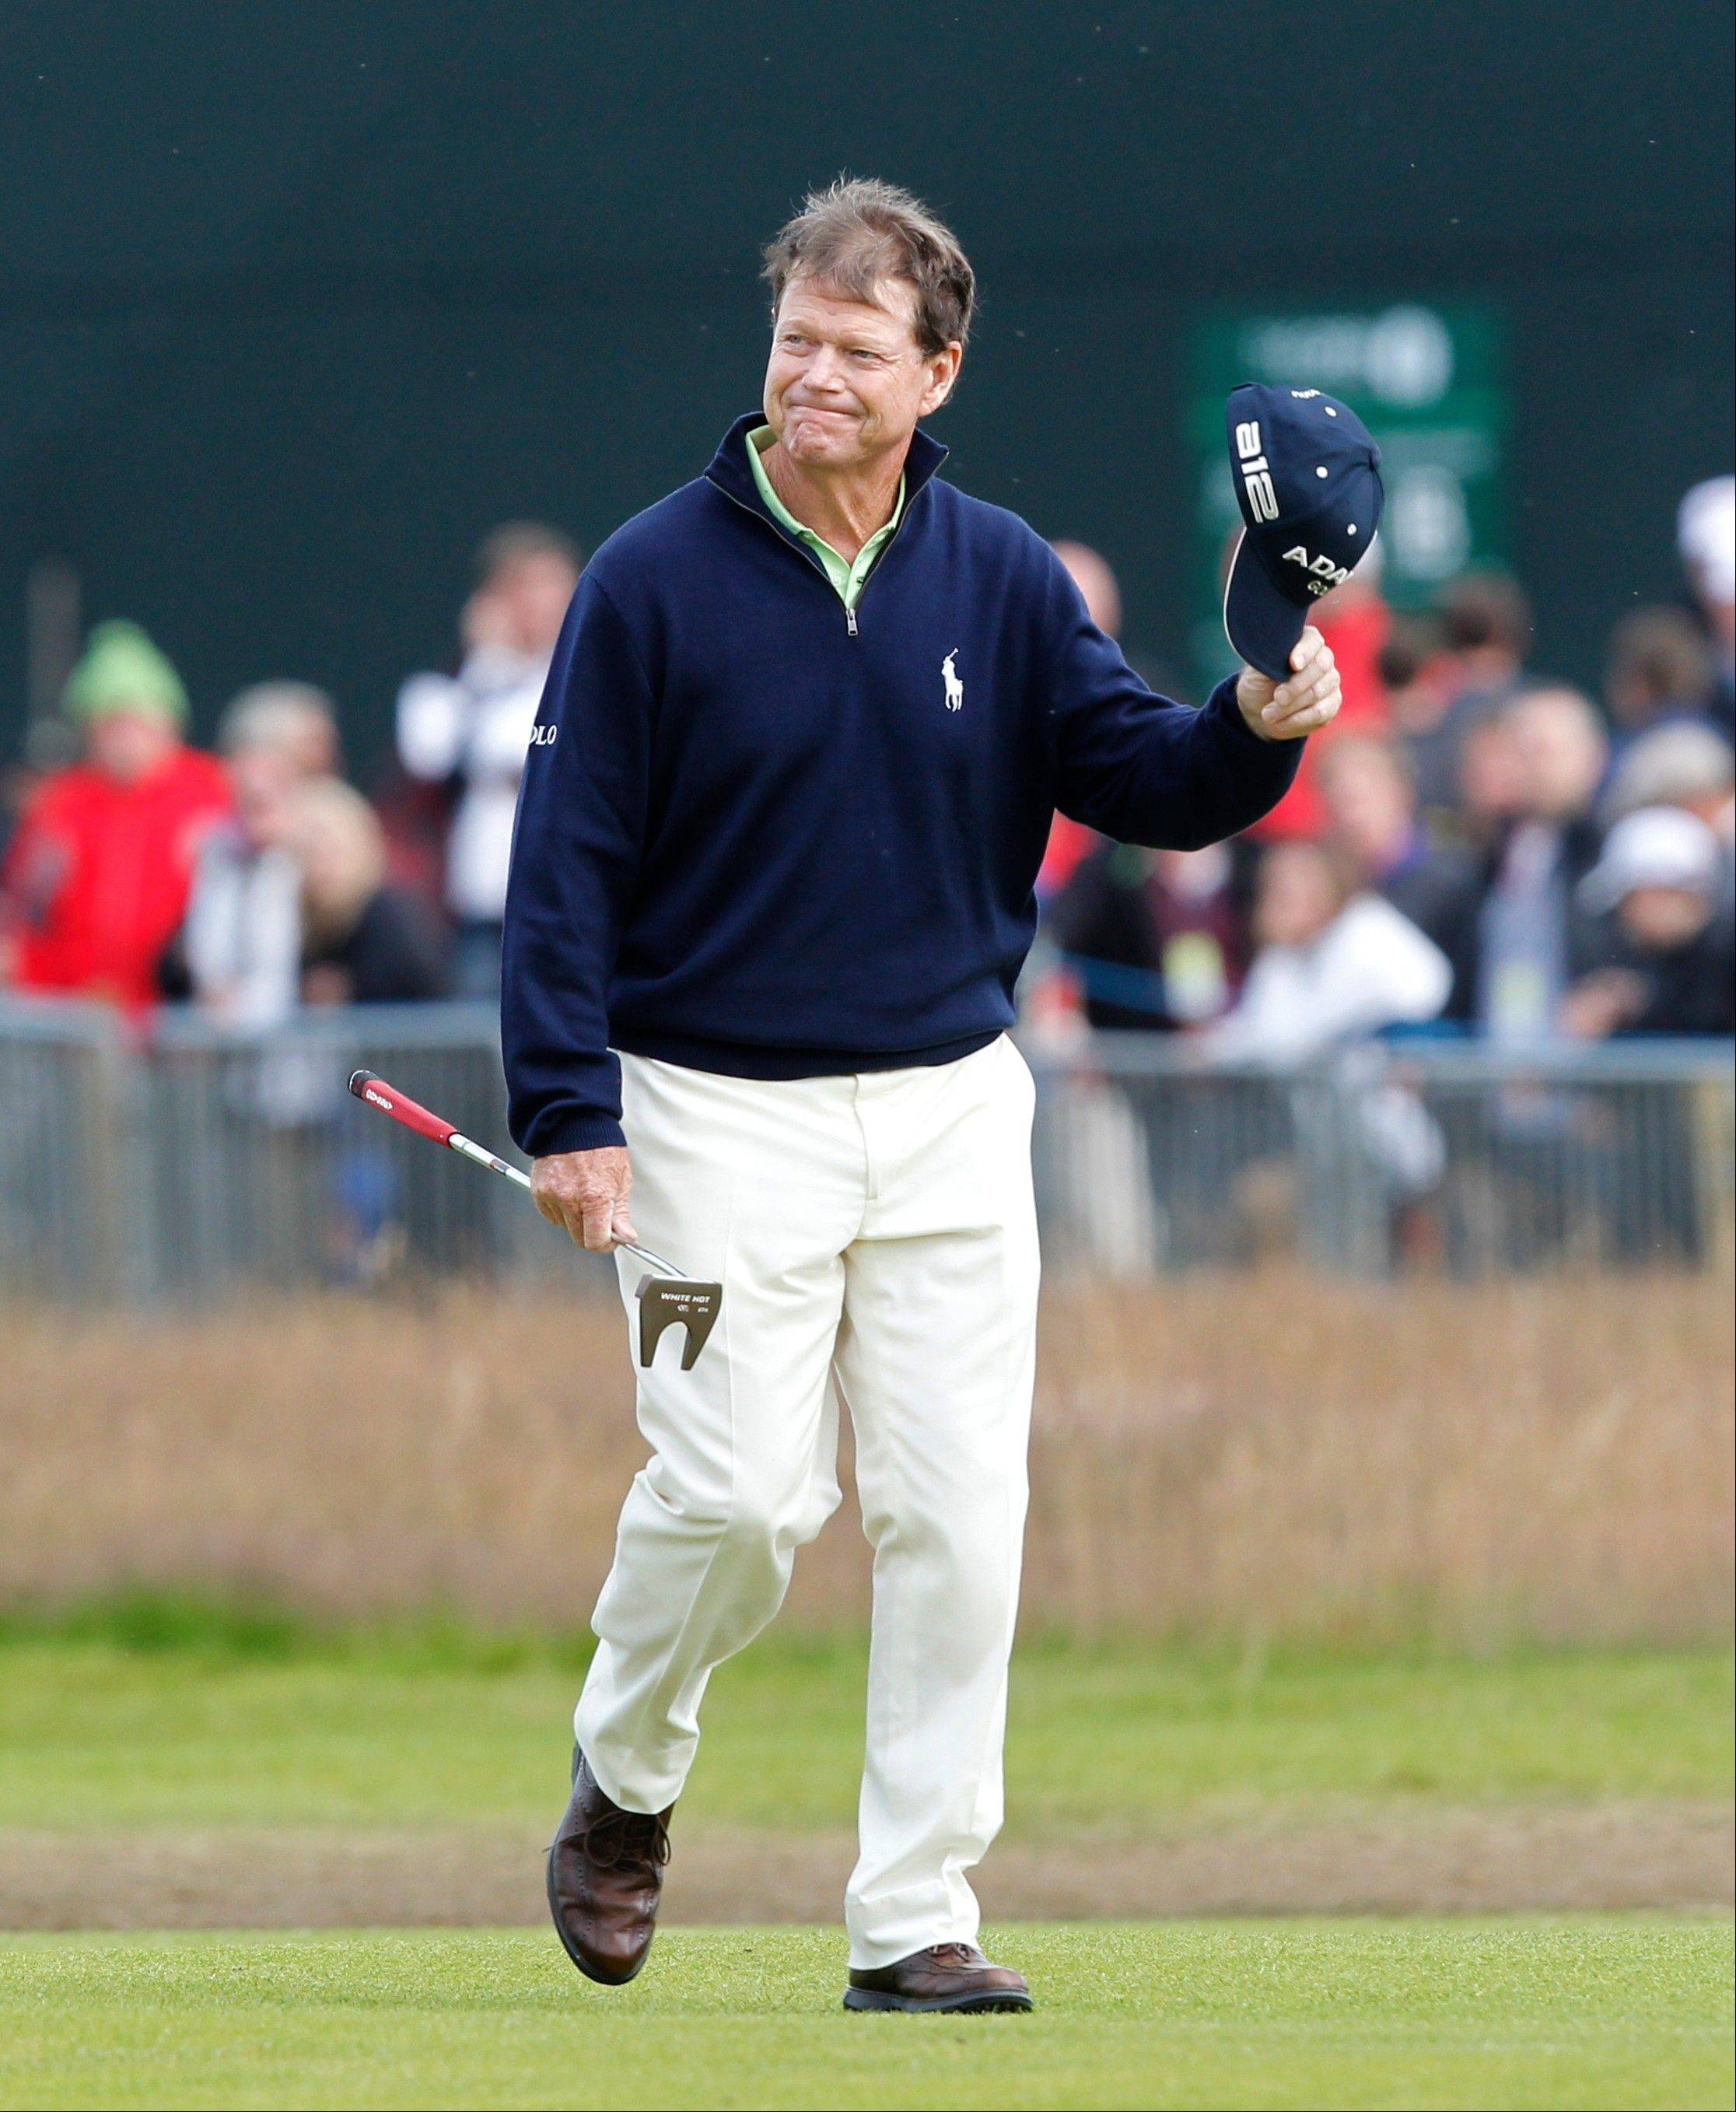 Tom Watson, shown here during the British Open Golf Championship last summer, is rumored to be the next U.S. Ryder Cup captain. Golf Digest has reported that the PGA of America plans to pick Watson as the 2014 Ryder Cup captain, and the announcement is scheduled to be made Thursday morning.